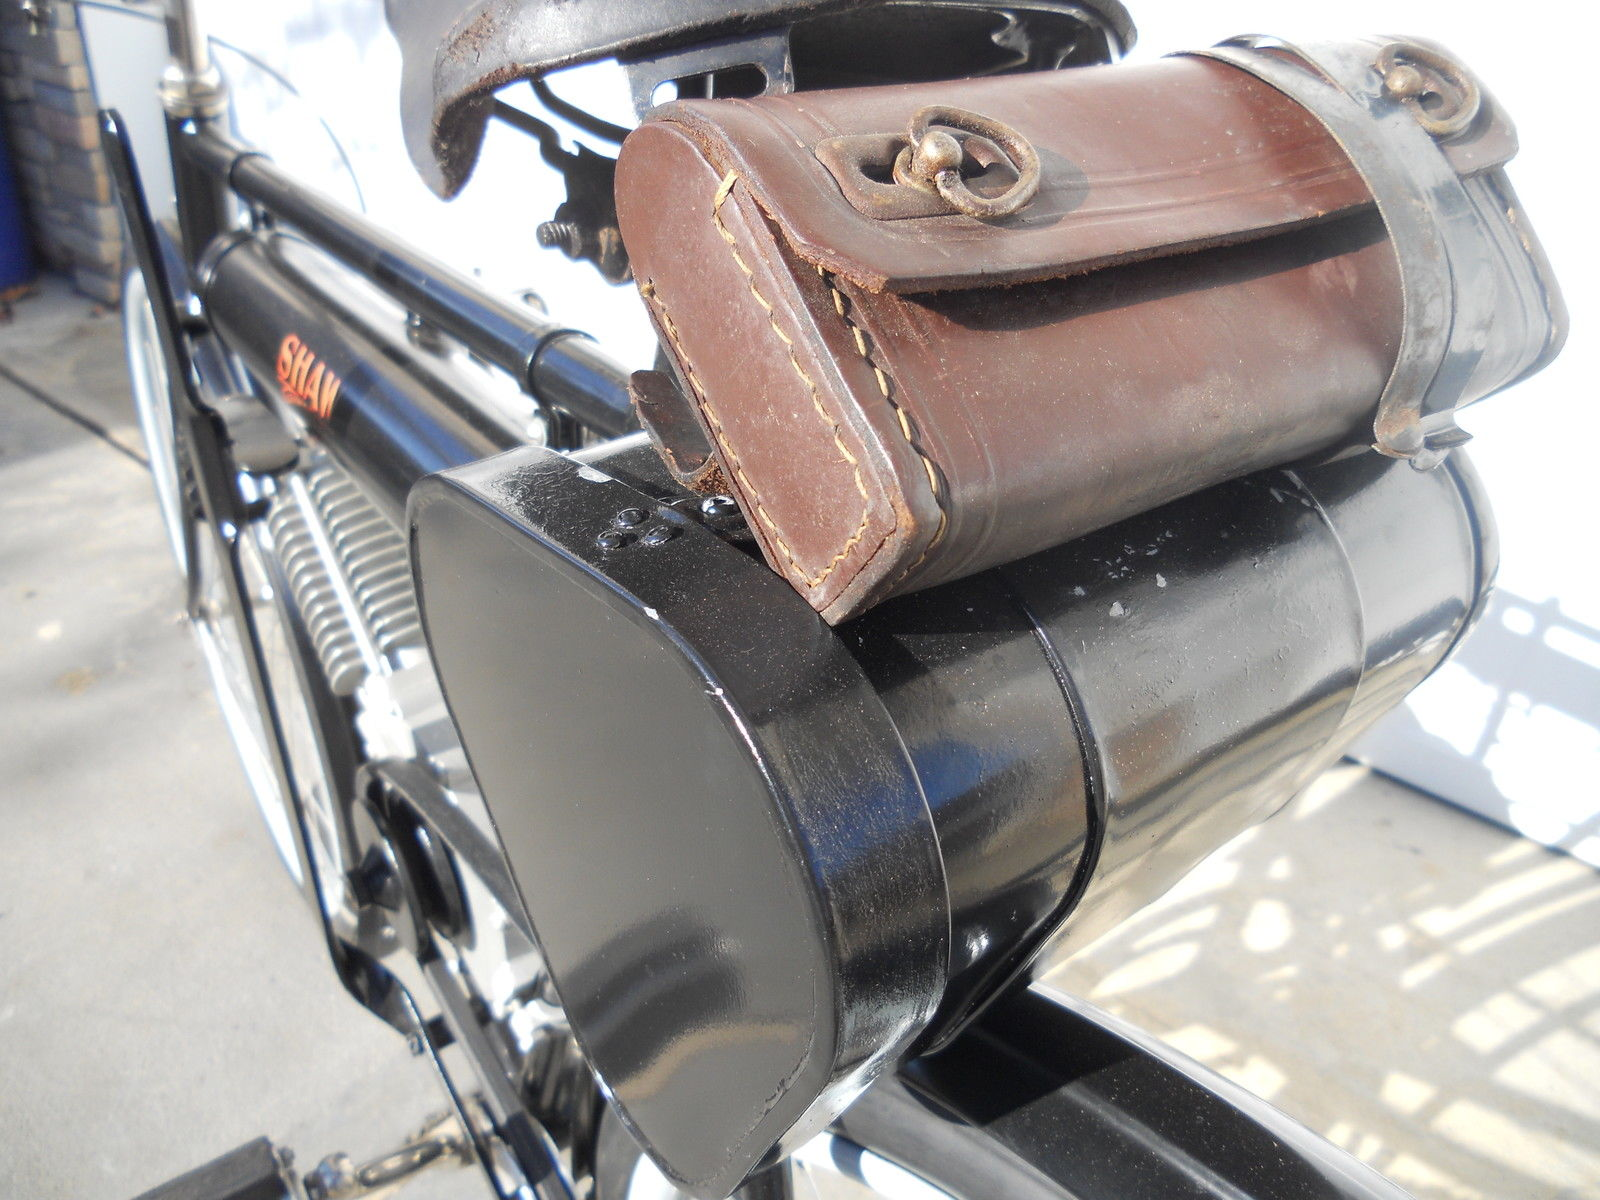 Shaw Motorcycle - 1913 - Seat, Saddle and Tool Bag.